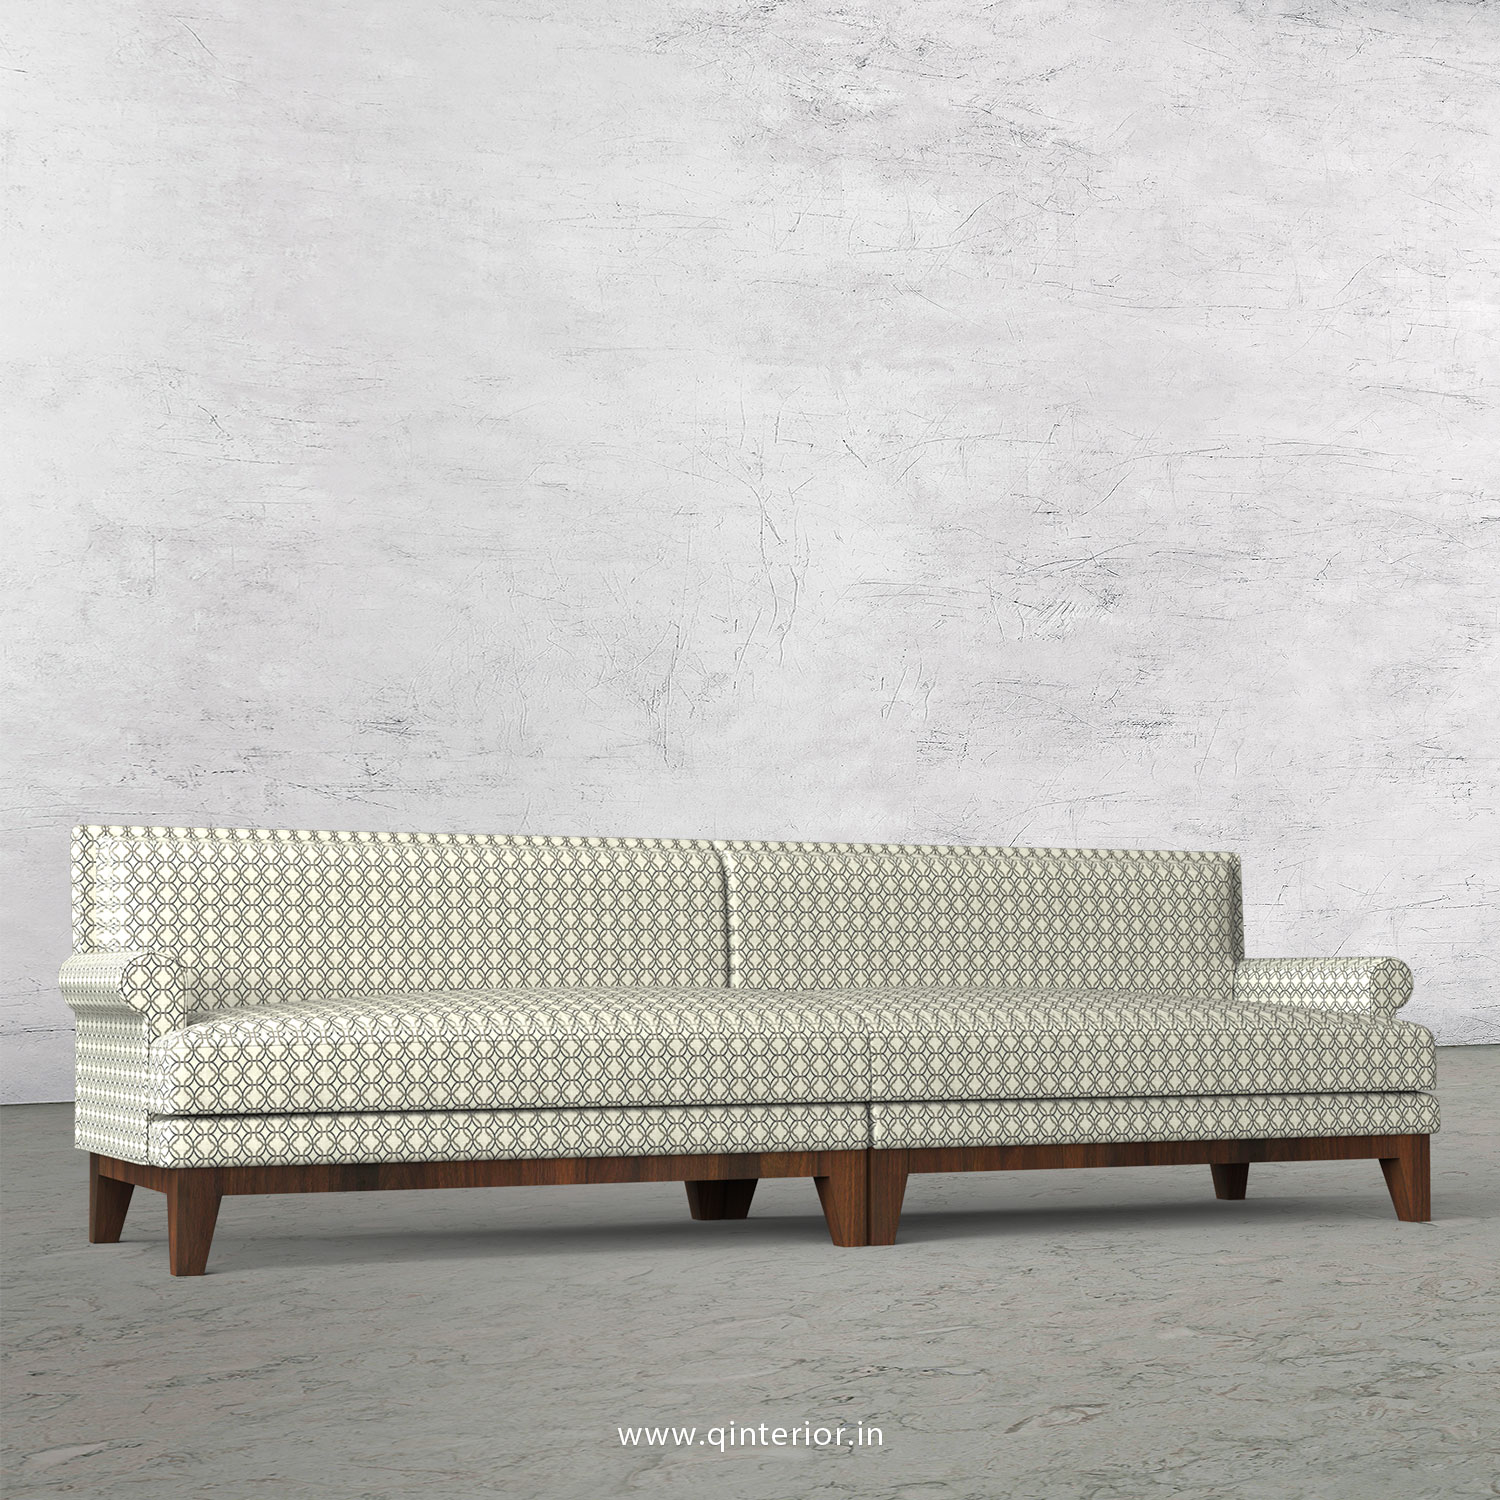 Aviana 4 Seater Sofa in Jacquard - SFA001 JQ03